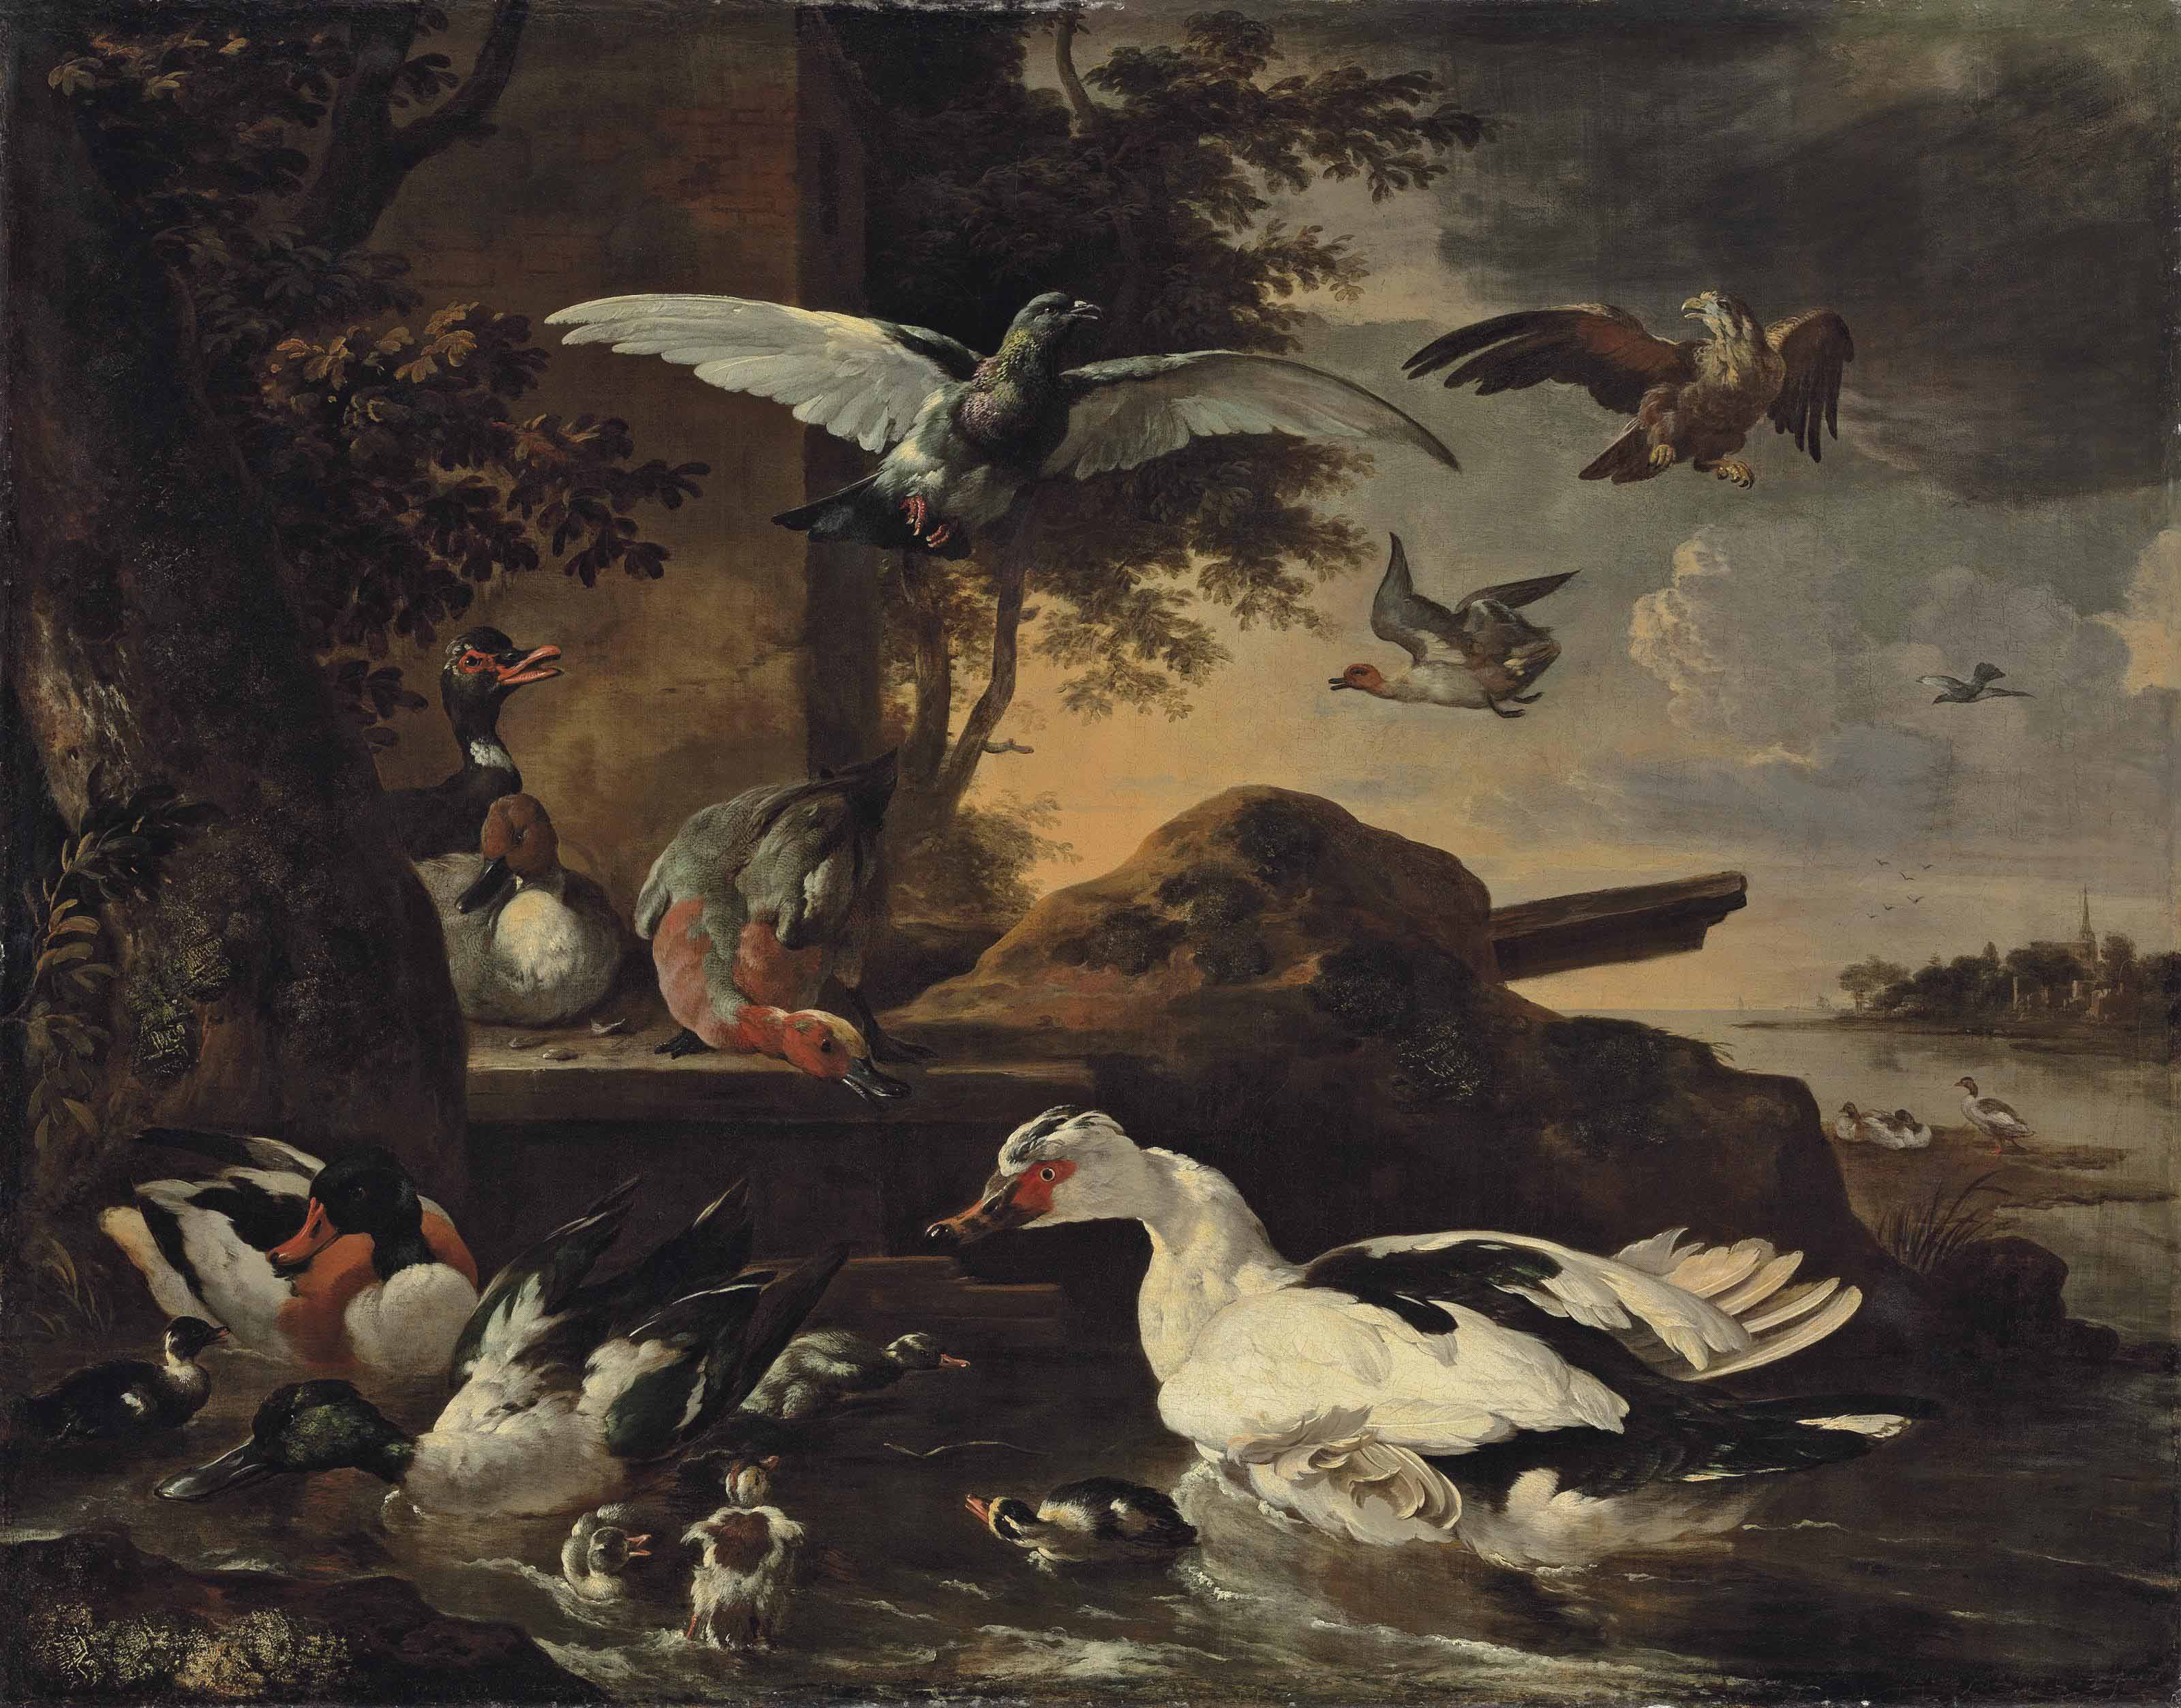 A shoveler, a Muscovy duck, a mallard, pochards and other waterfowl with ducklings on the banks of a river, with a pigeon and a bird of prey in the air